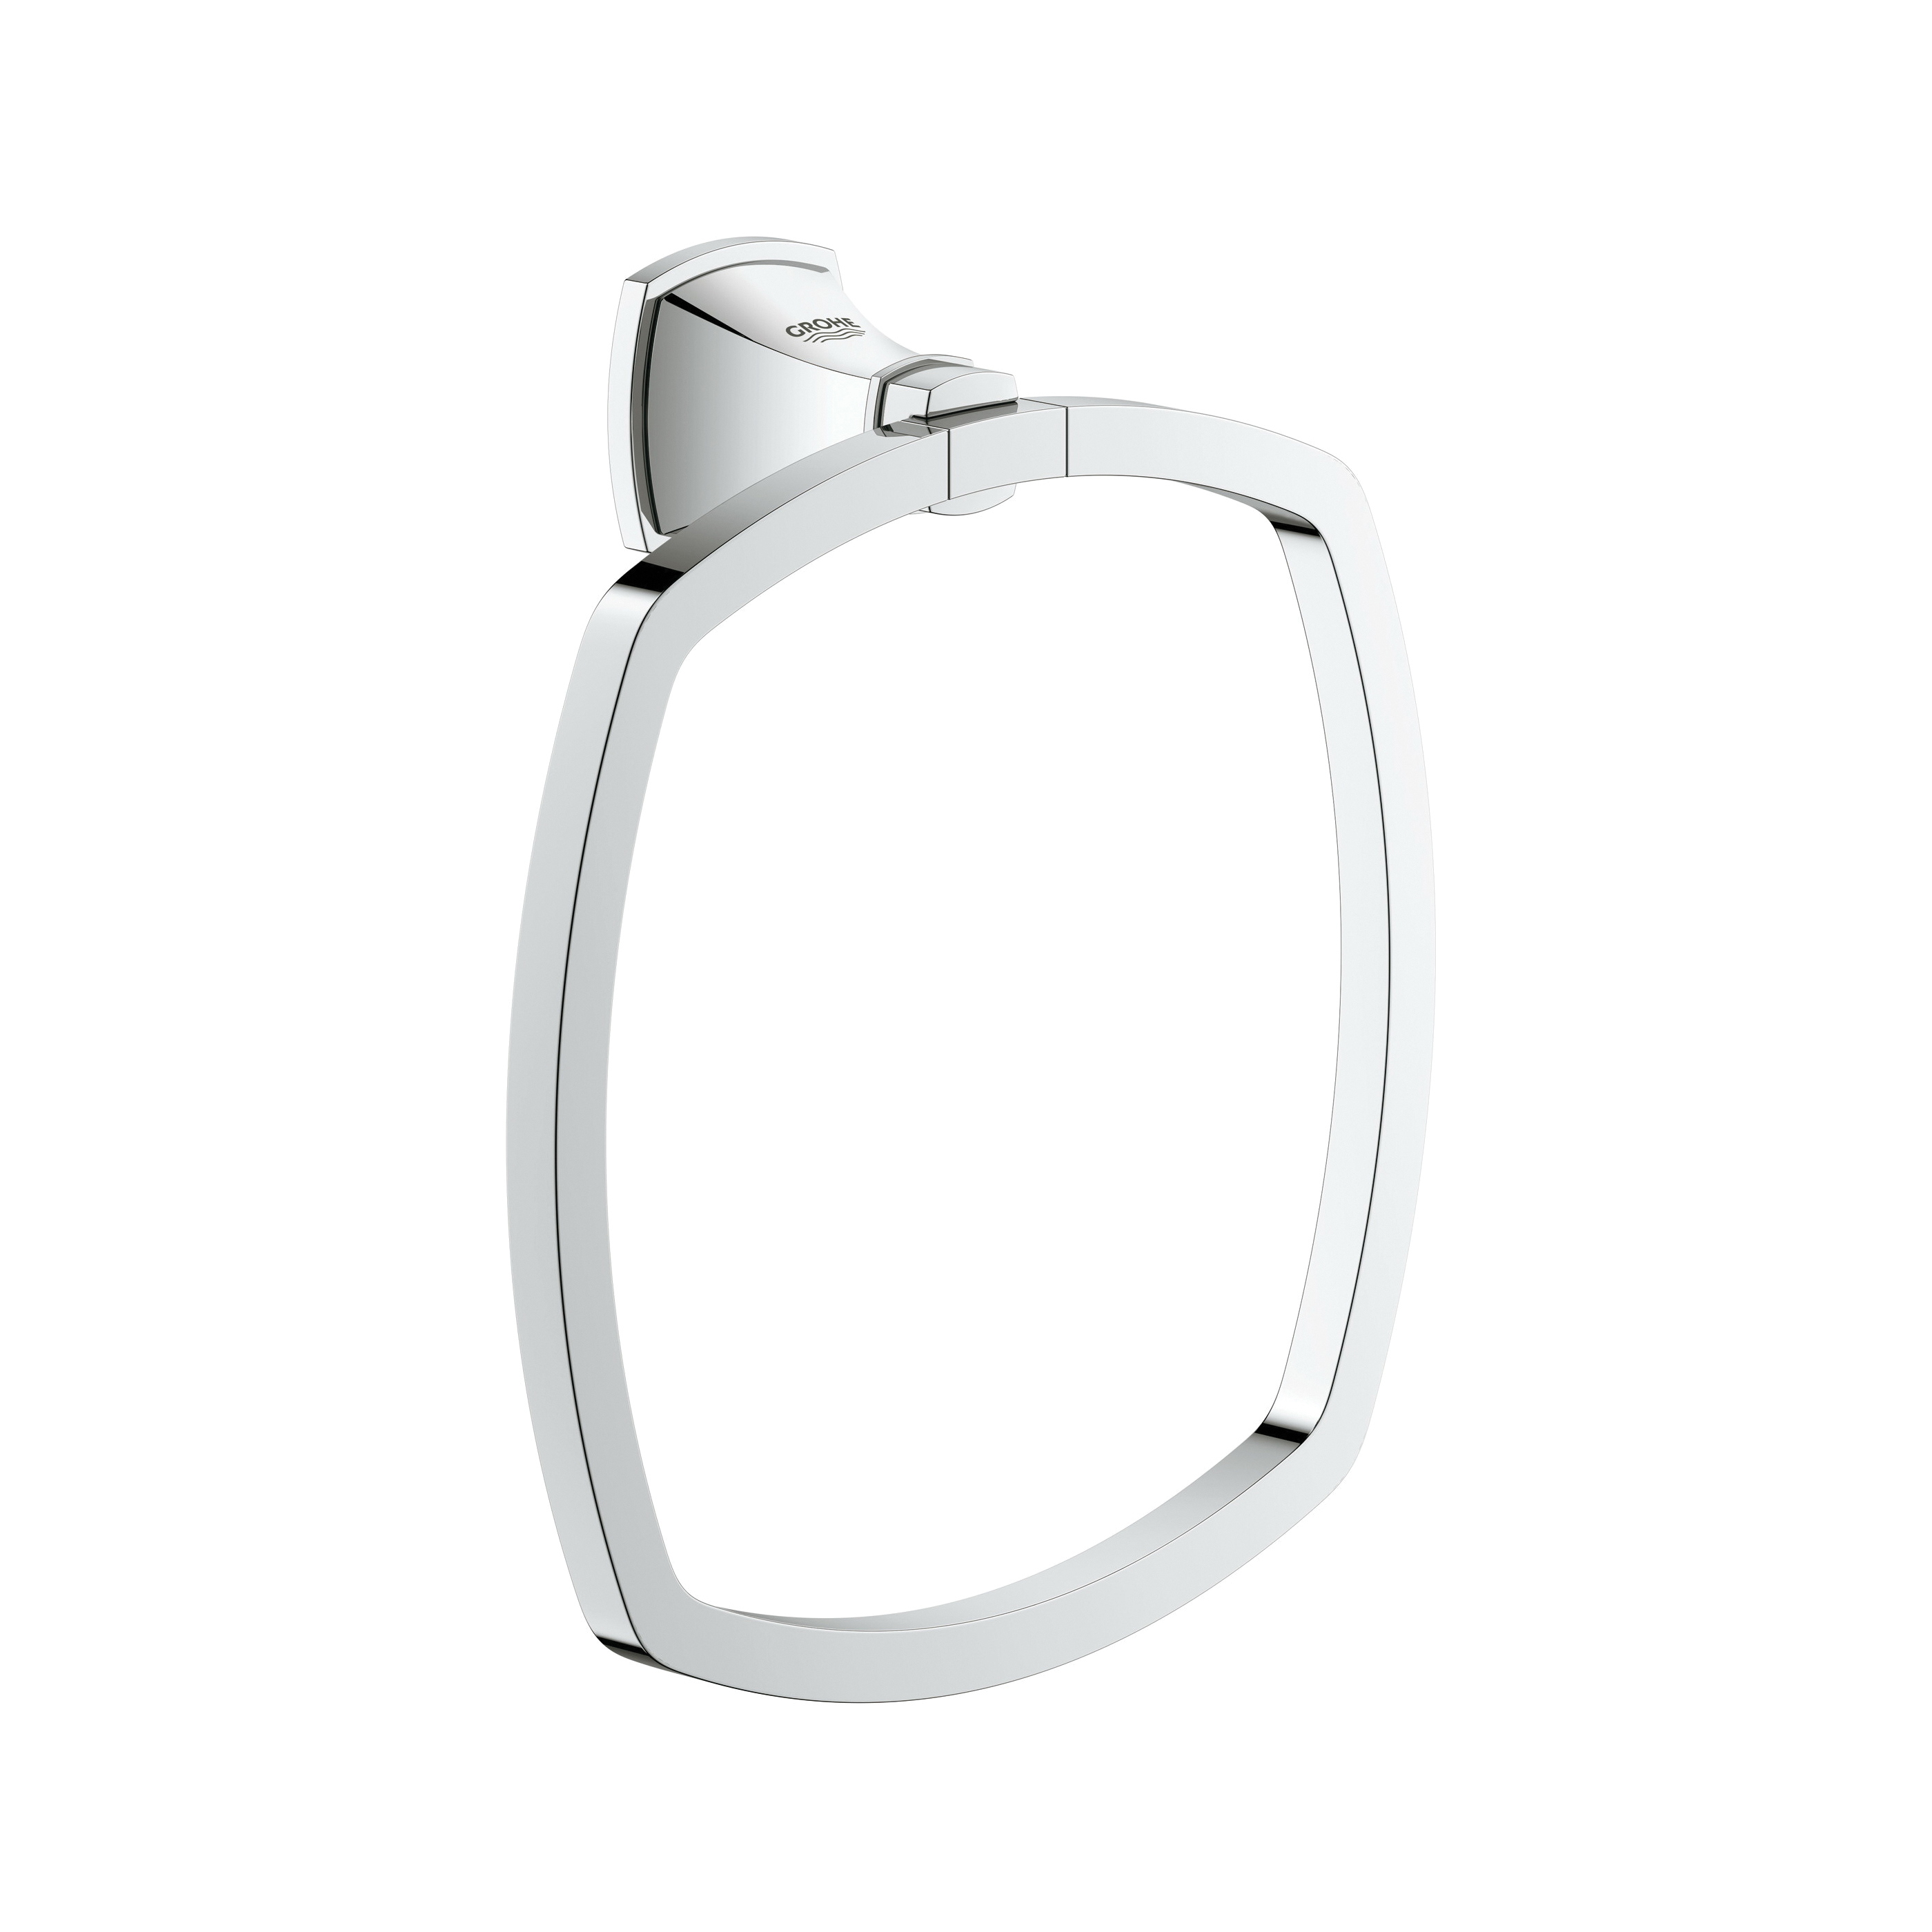 GROHE 40630000 Grandera™ Towel Ring, 7-1/4 in Dia Ring, 2-5/16 in OAD x 4-15/16 in OAH, Brass, Import